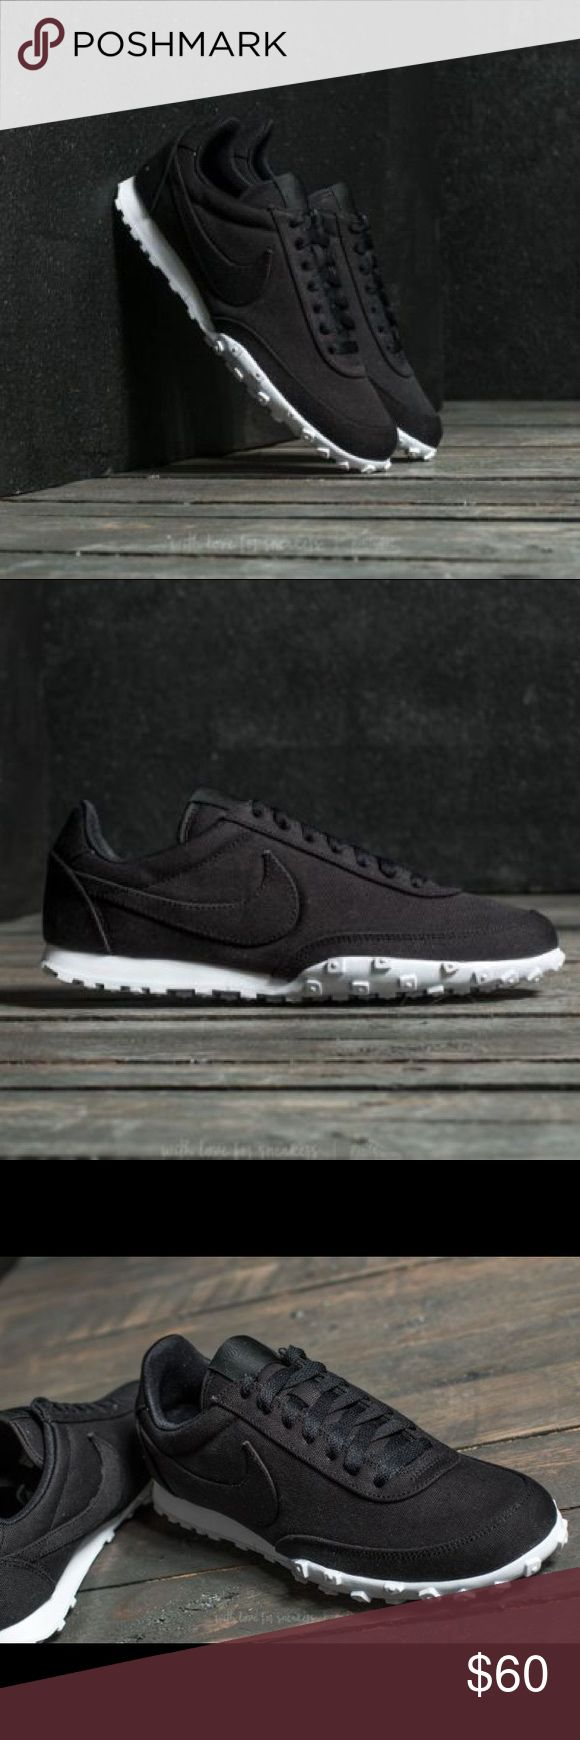 New $95 NIKE WAFFLE RACER '17 TXT Black size 9.5 New With Box $95 NIKE WAFFLE RACER '17 TXT Black in size 9.5 Nike Shoes Athletic Shoes